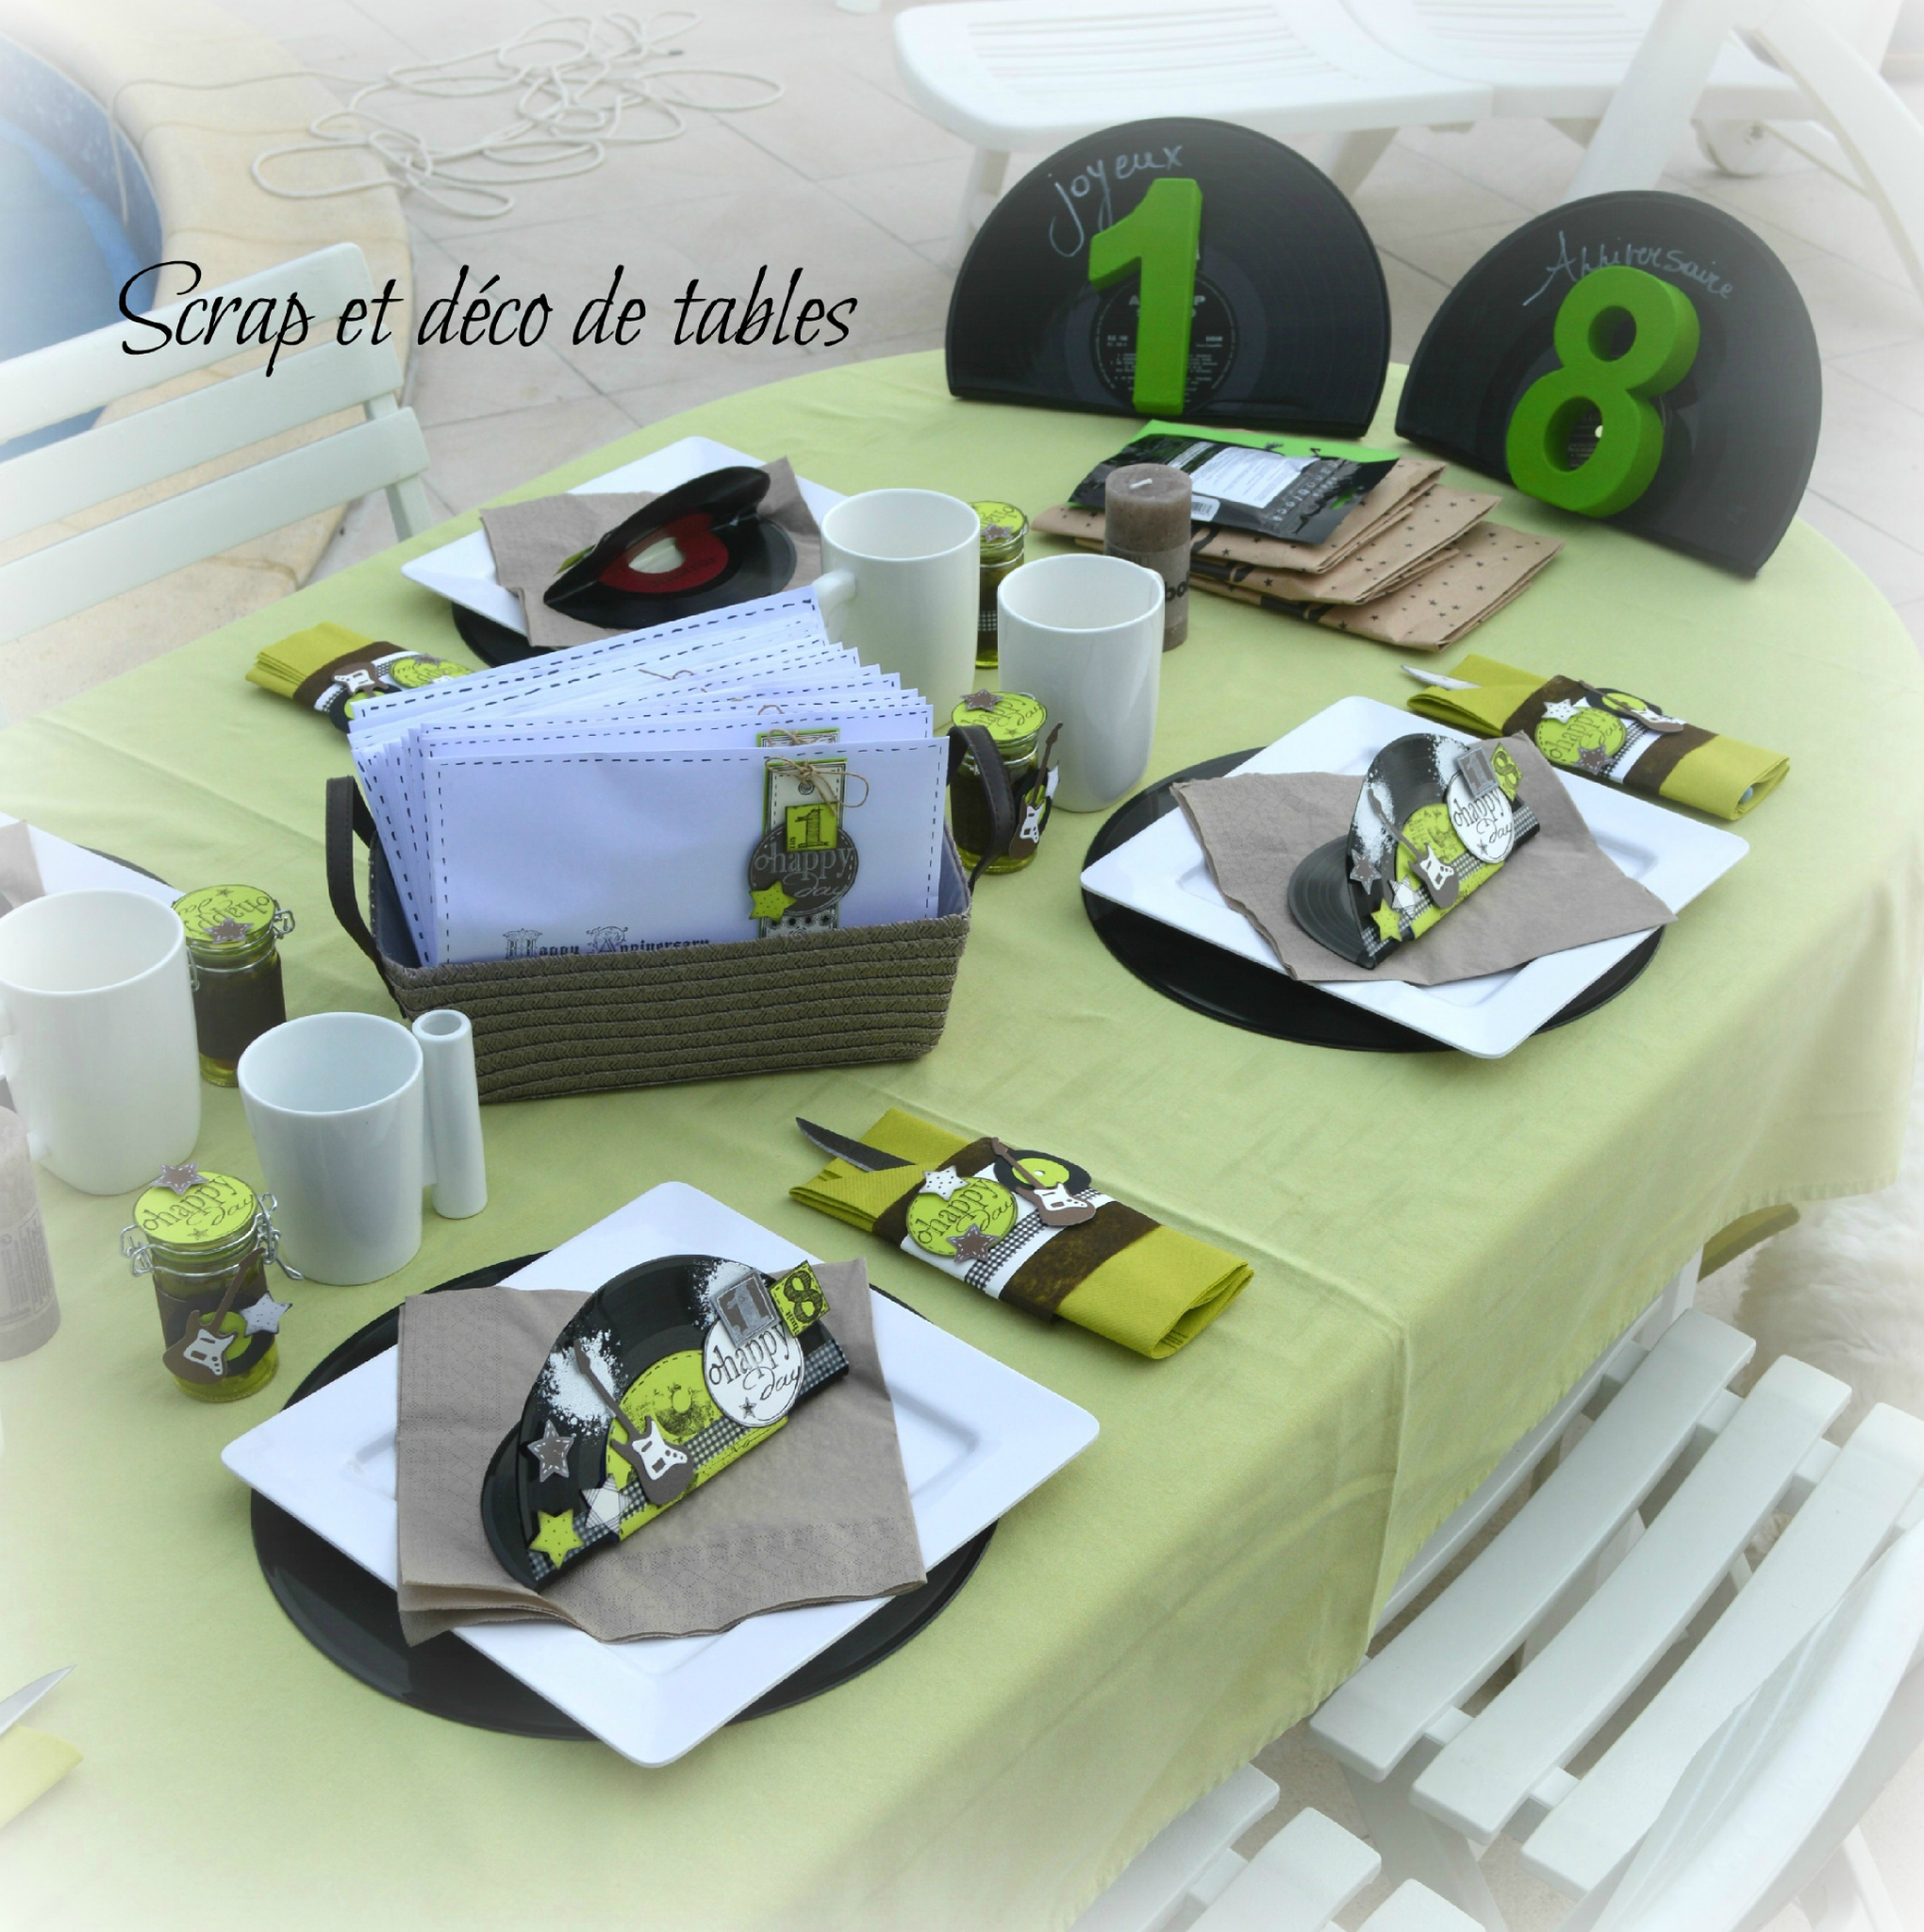 Deco de table pour les 18 ans de thomas scrap et d co de for Decoration 18 ans garcon